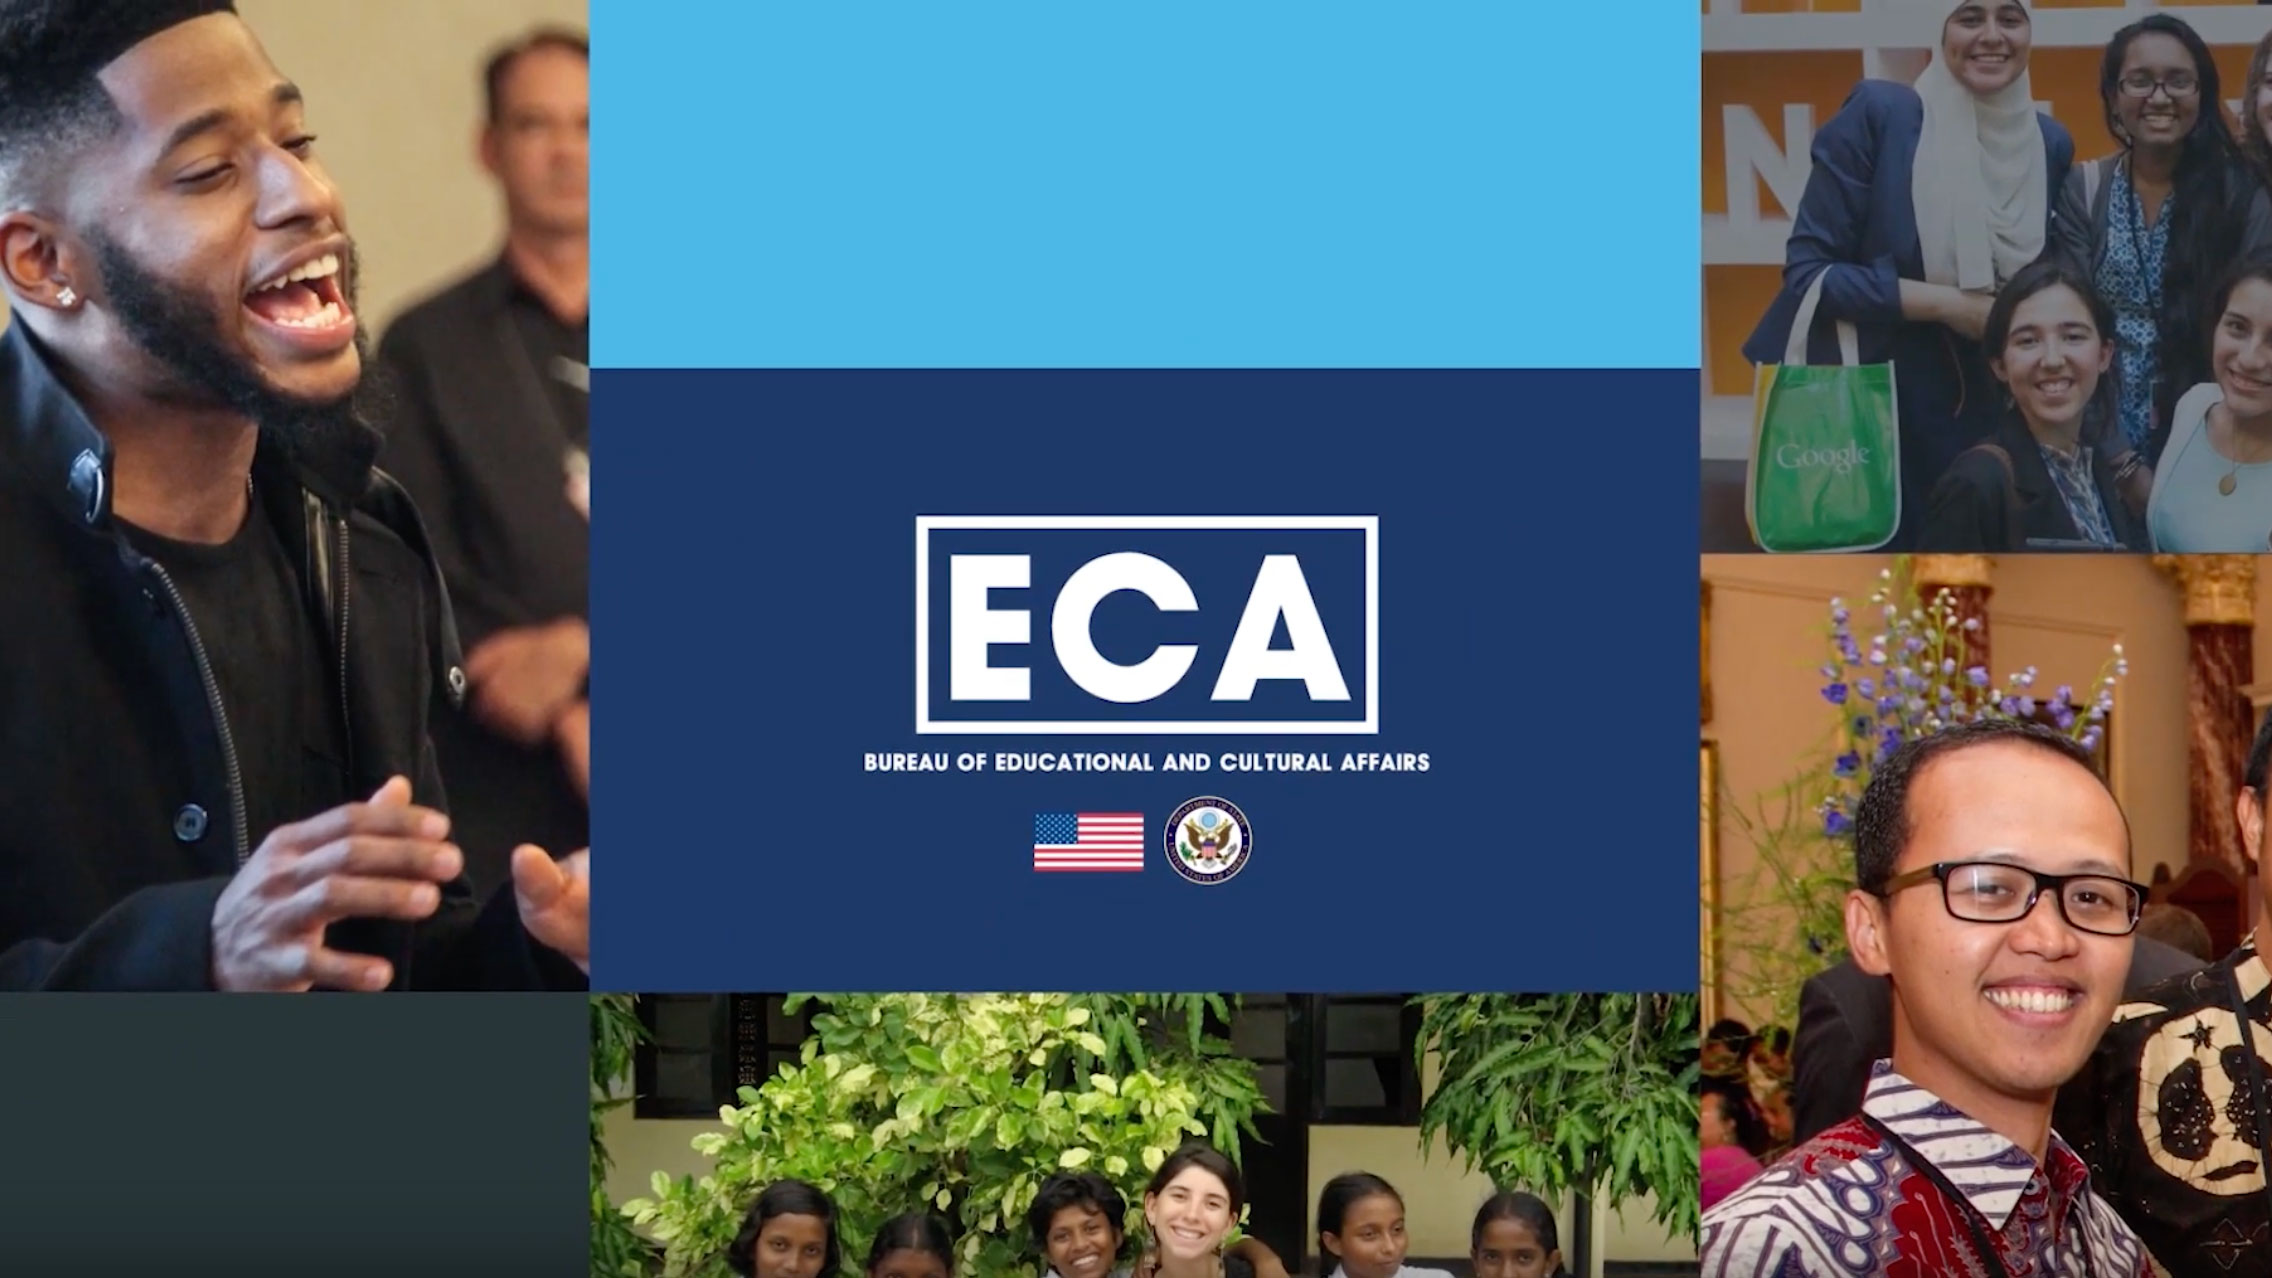 ECA Bureau of Educational and Cultural Affairs